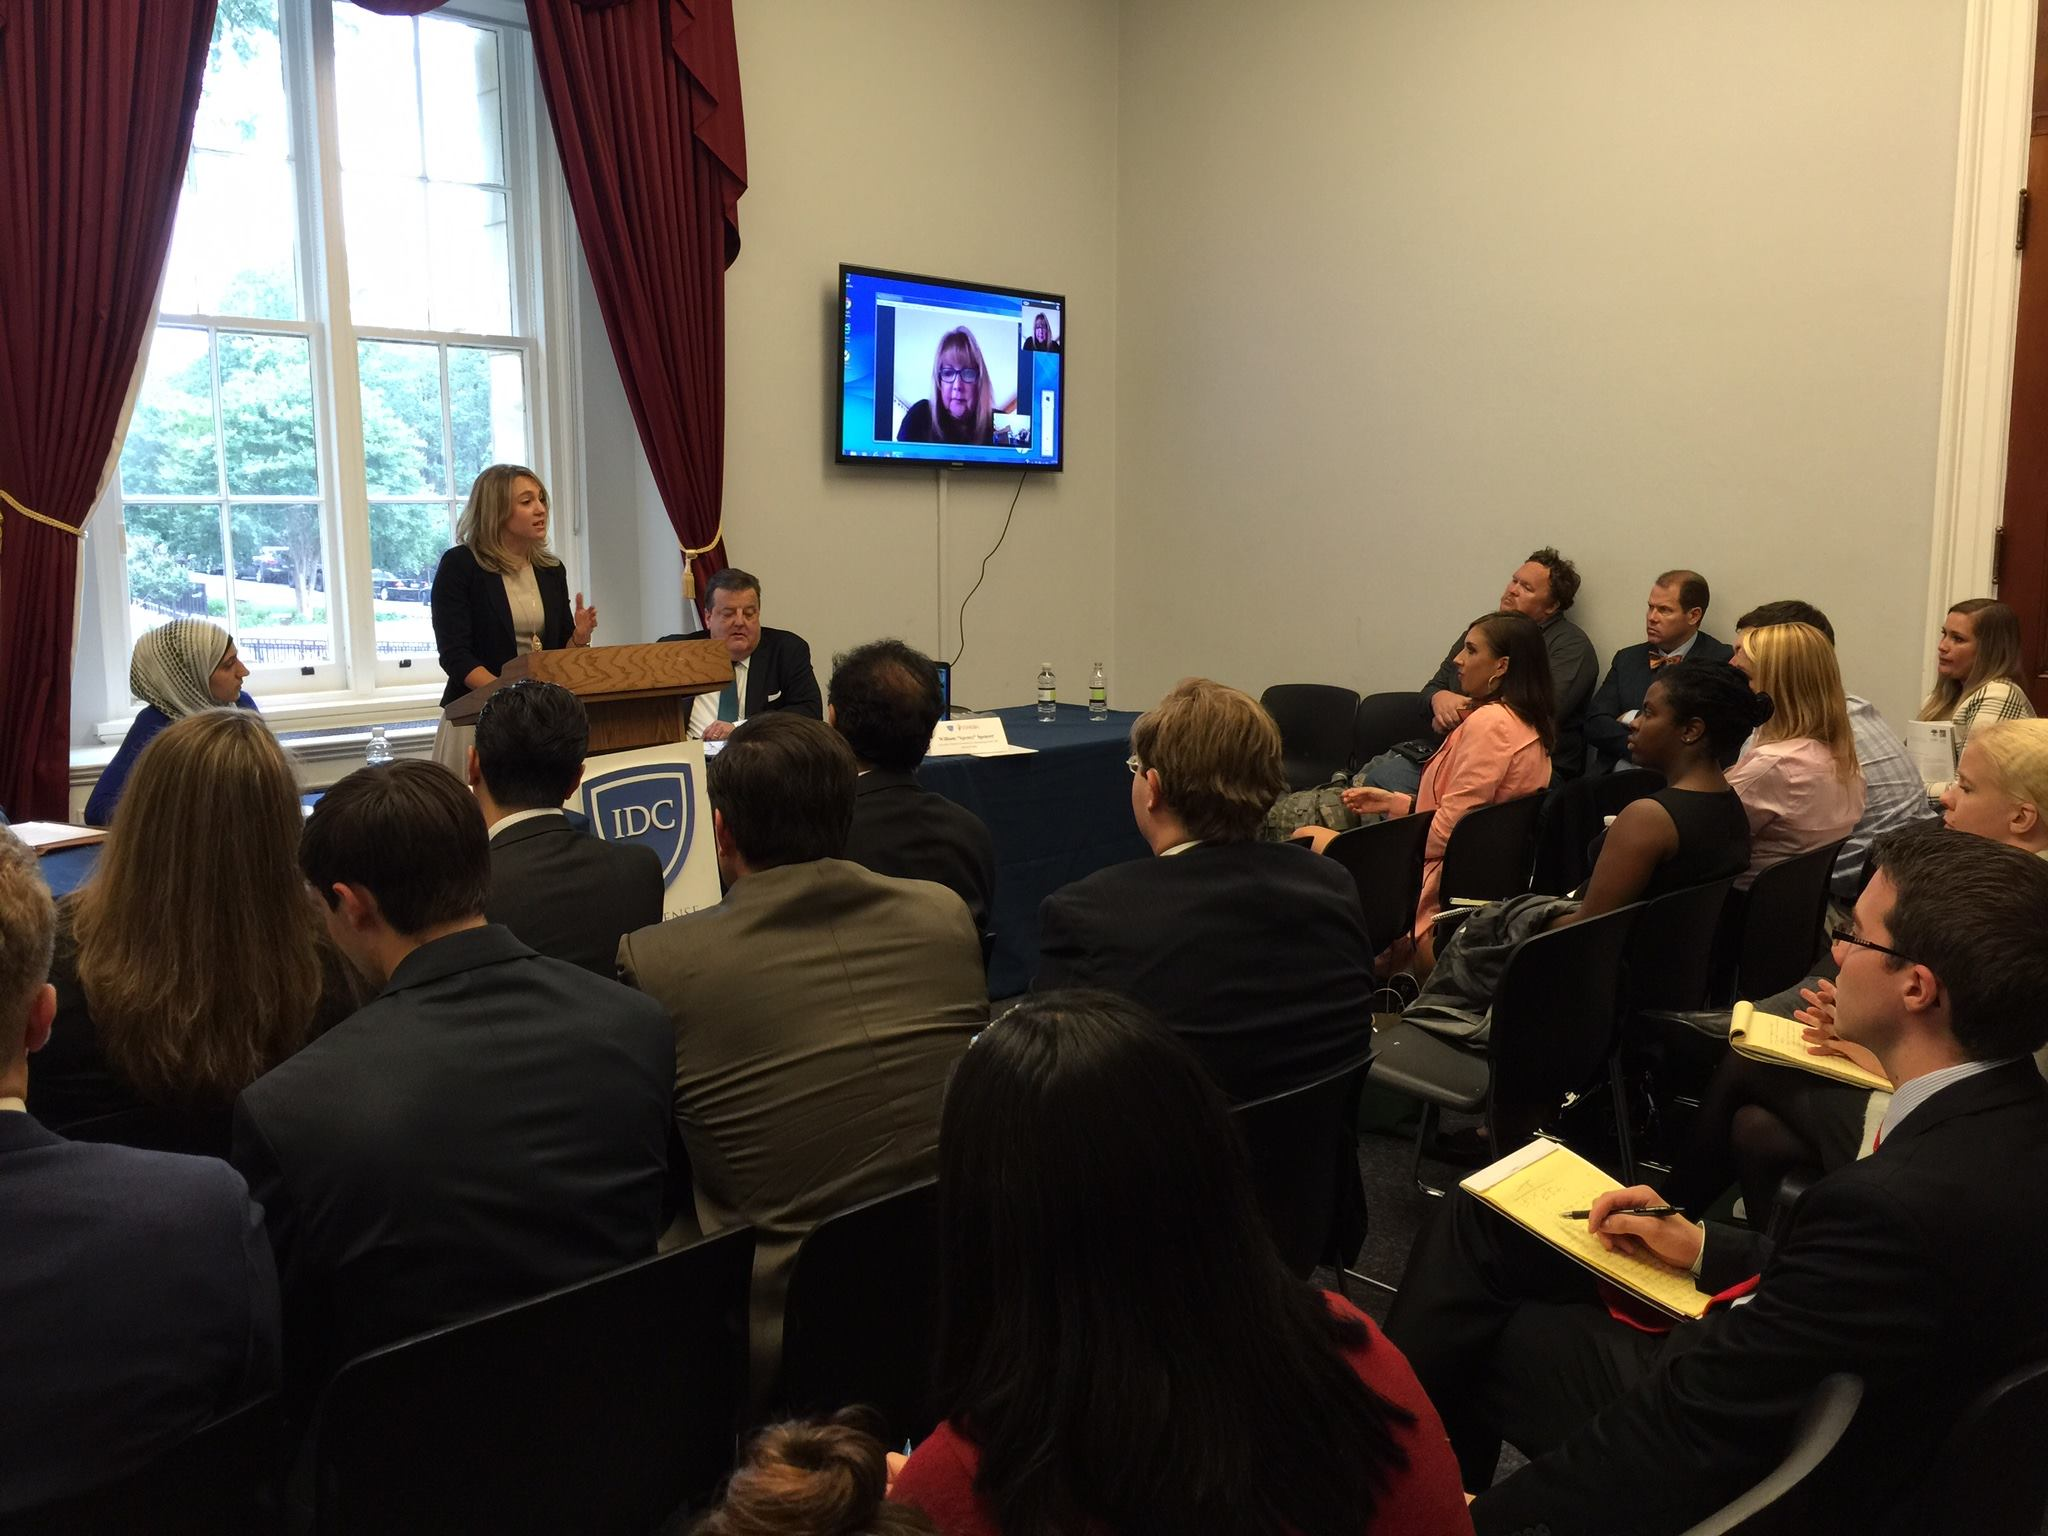 """June 5 2015: Kristina briefs Hill staffers in D.C. on """"How Christianity Will Survive in Iraq: Prospects for a Political Solution."""" The event was co-hosted by International Christian Concern, In Defense of Christians, and included support from Iraqi and Kurdistan religious freedom and government groups."""